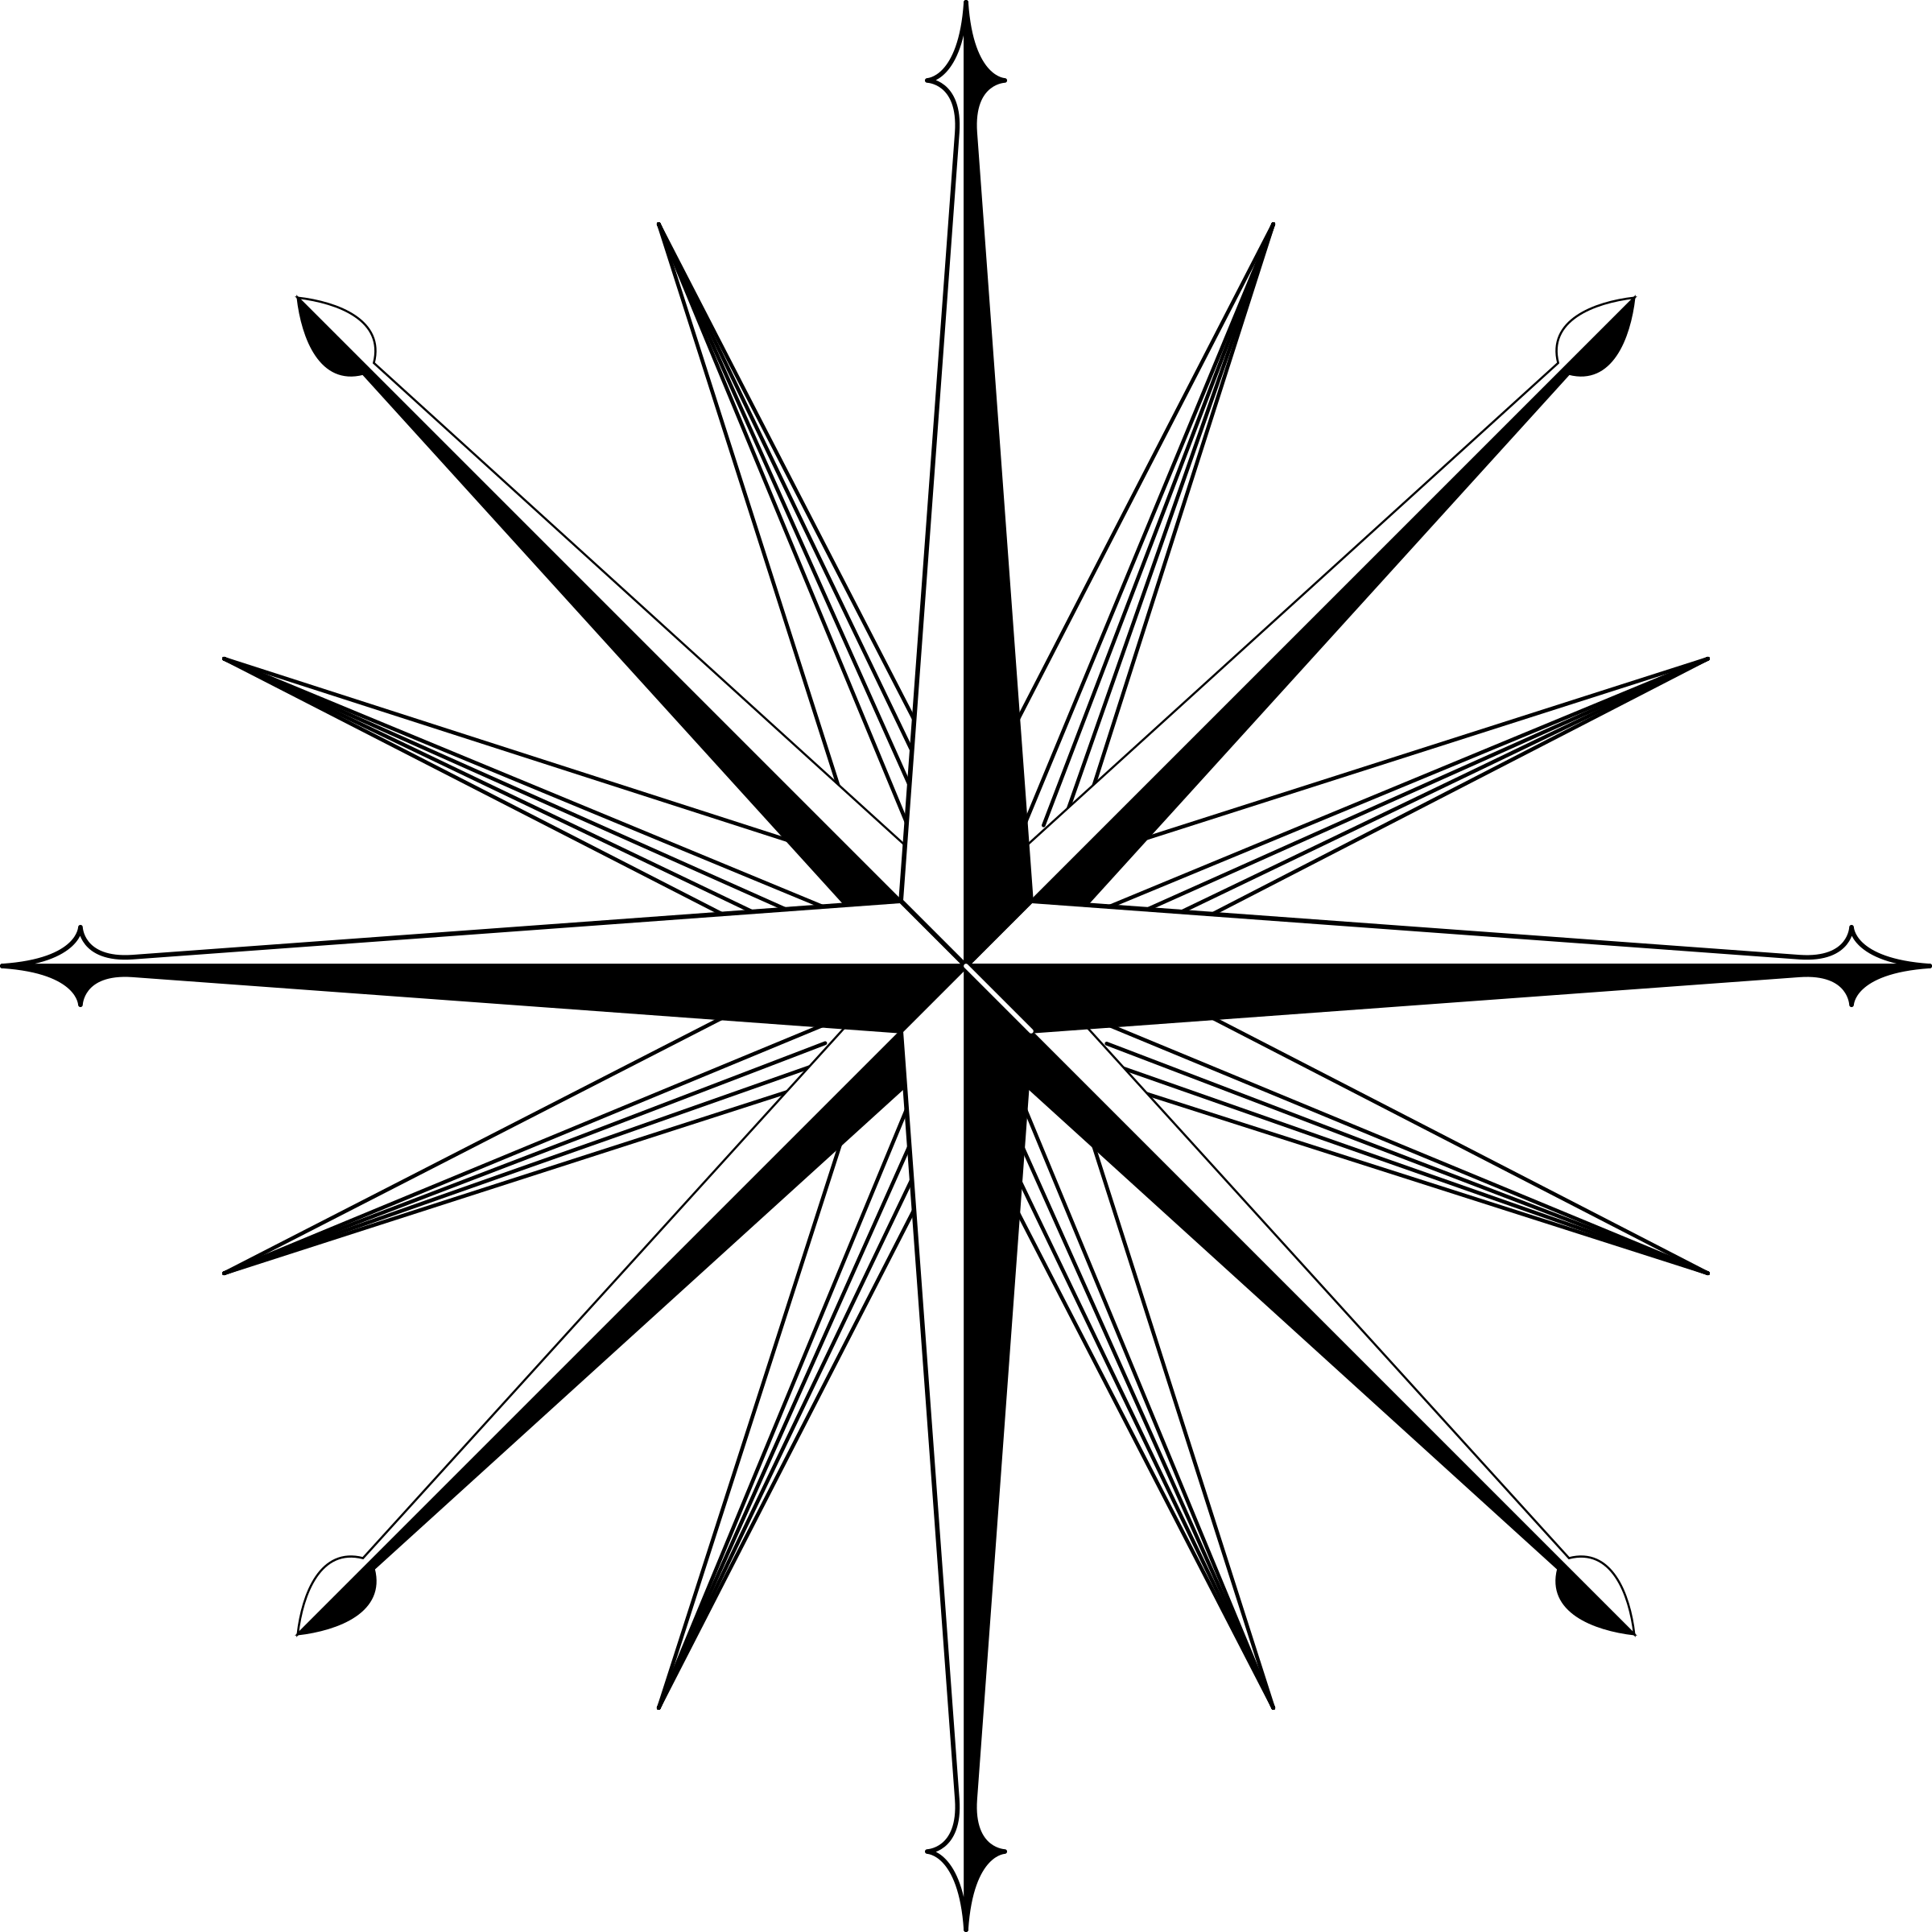 wind rose / compass rose by urwald